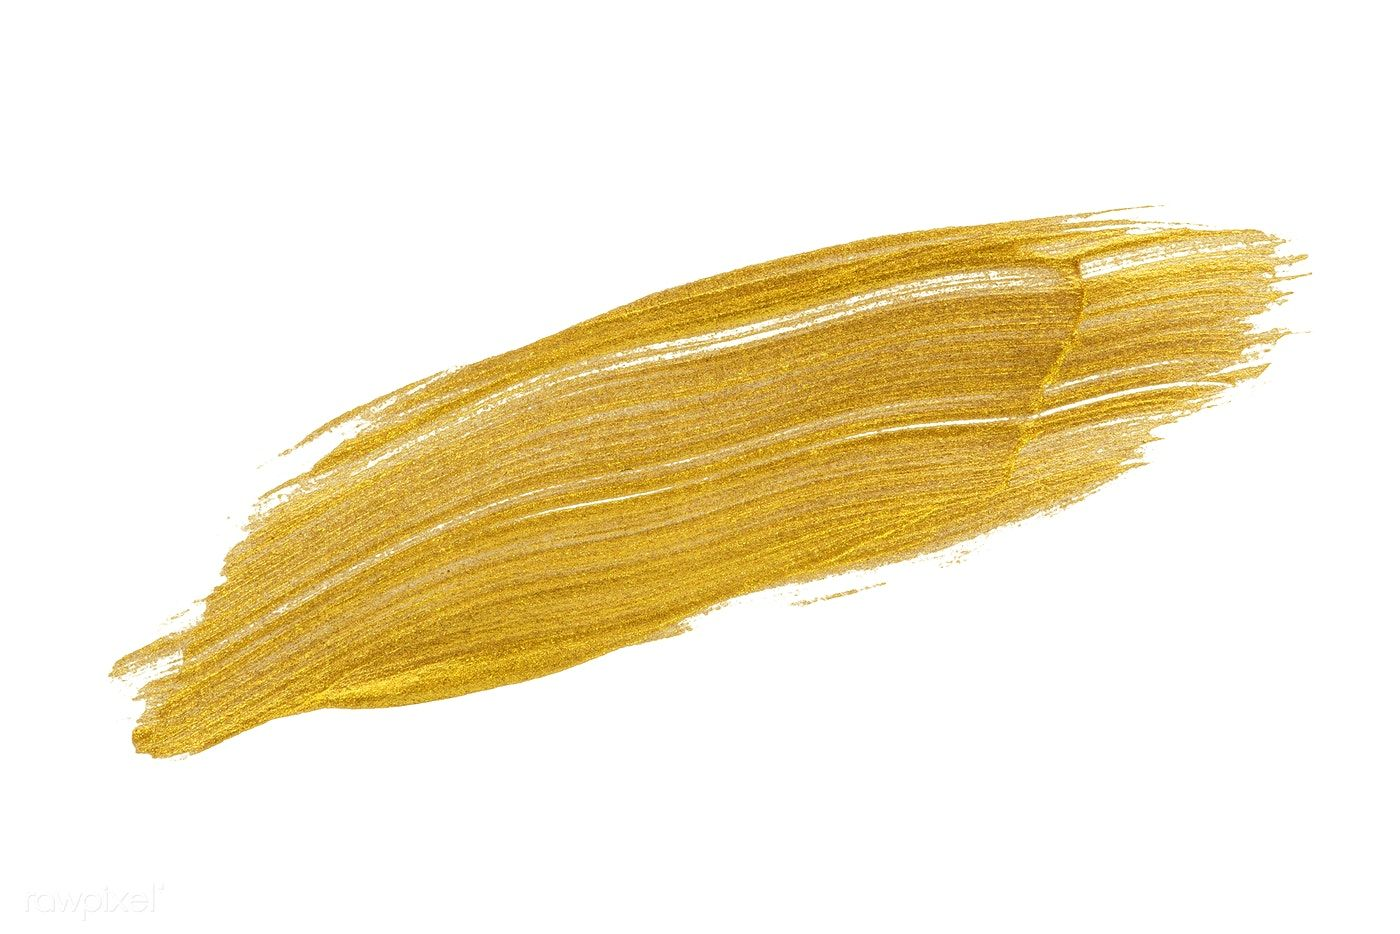 Download Premium Psd Of Festive Shimmery Golden Brush Stroke 552783 Brush Strokes Shimmery Paint Strokes